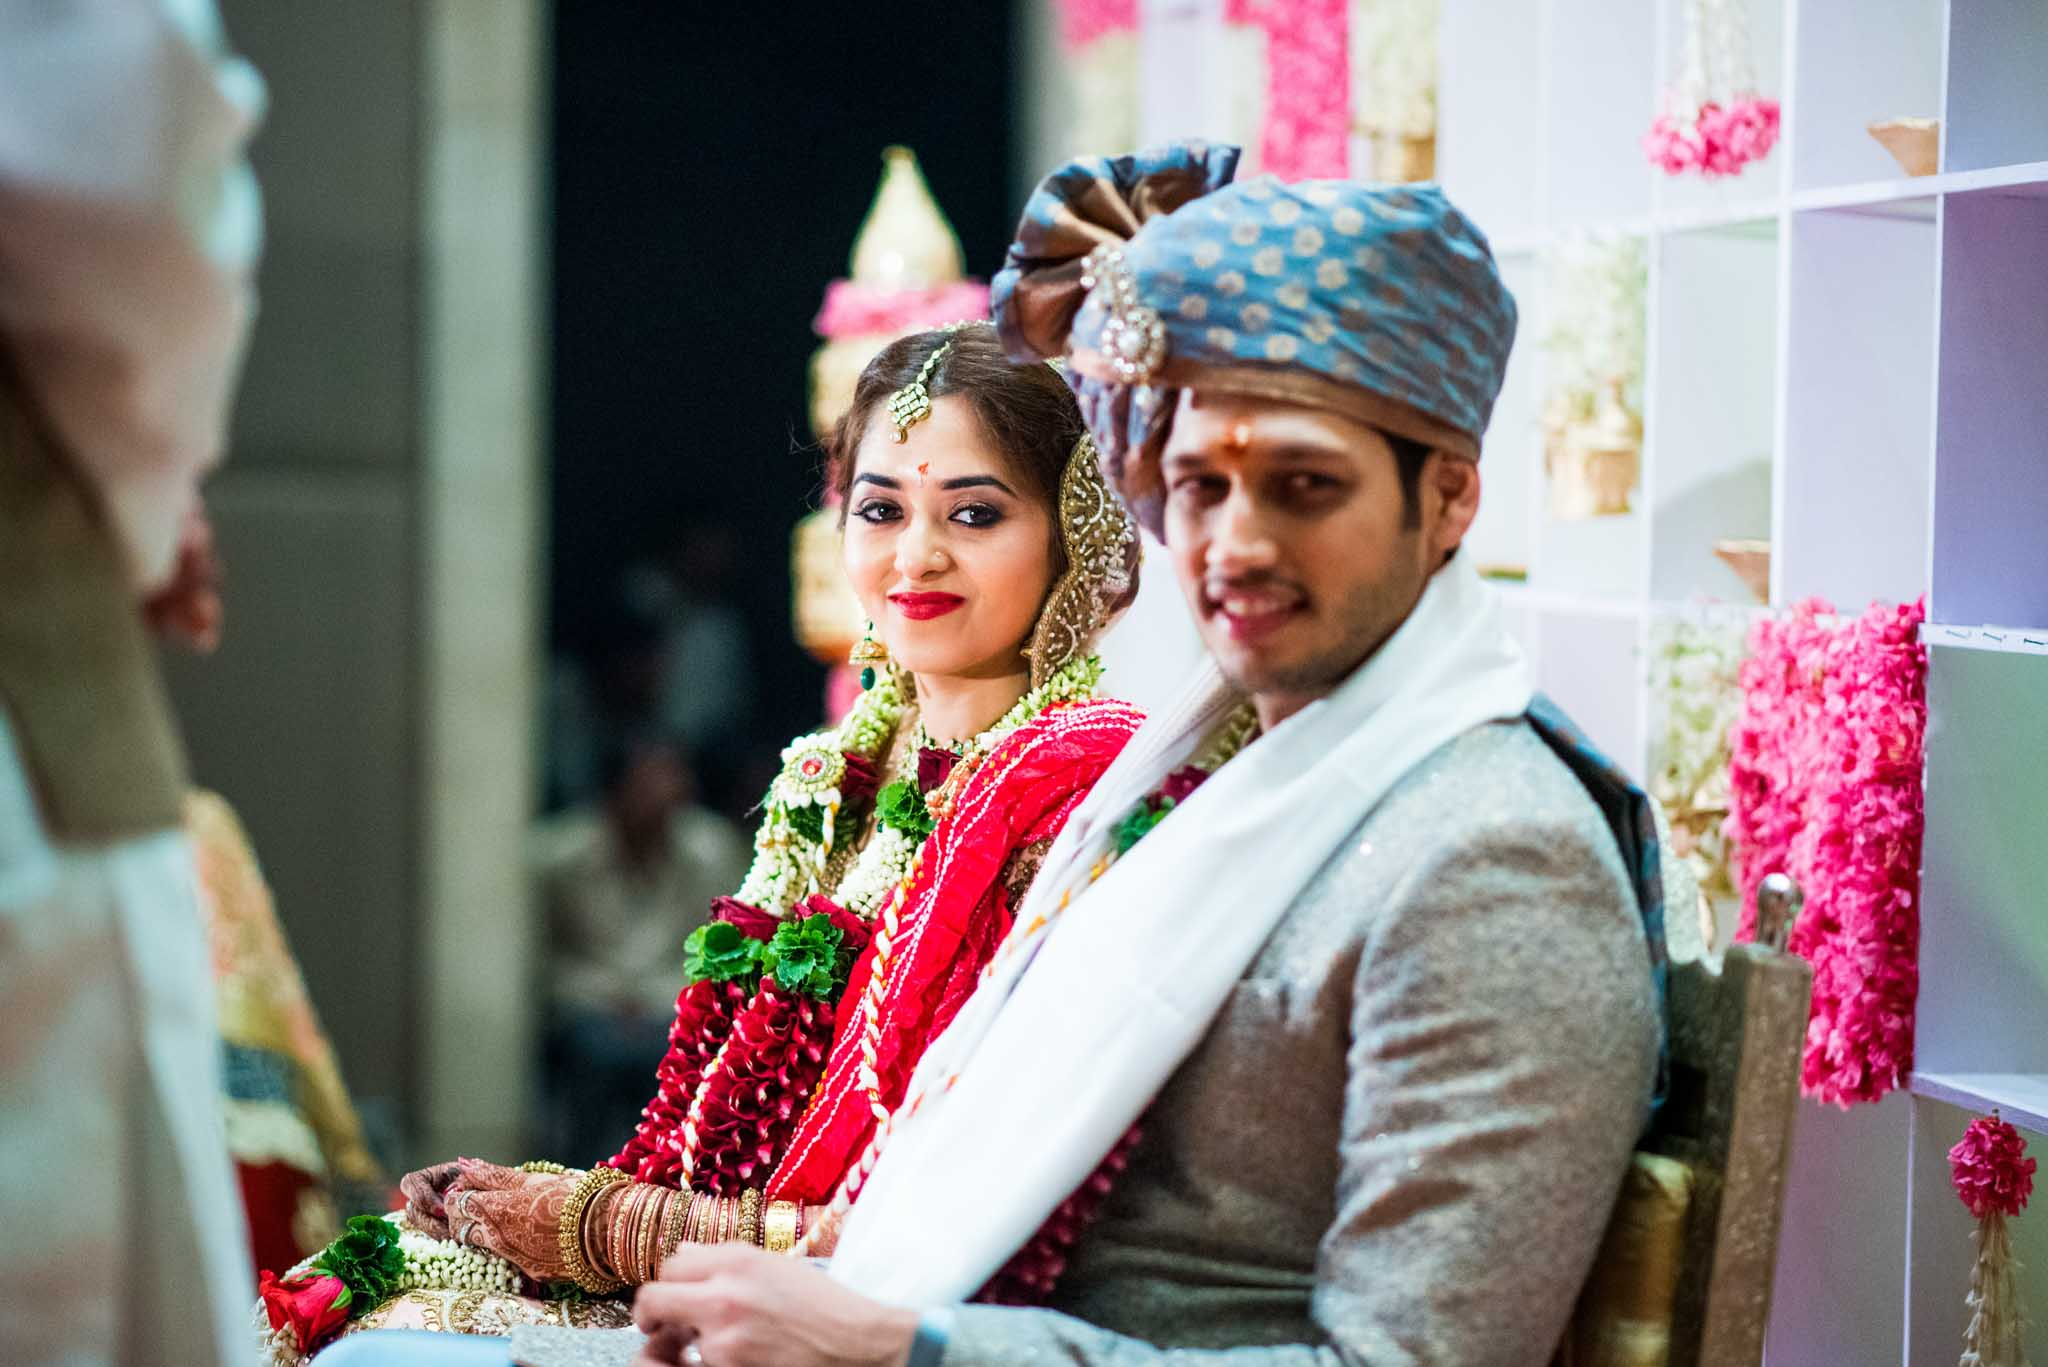 StRegis-Palladium-Mumbai-Candid-Wedding-Photography-51